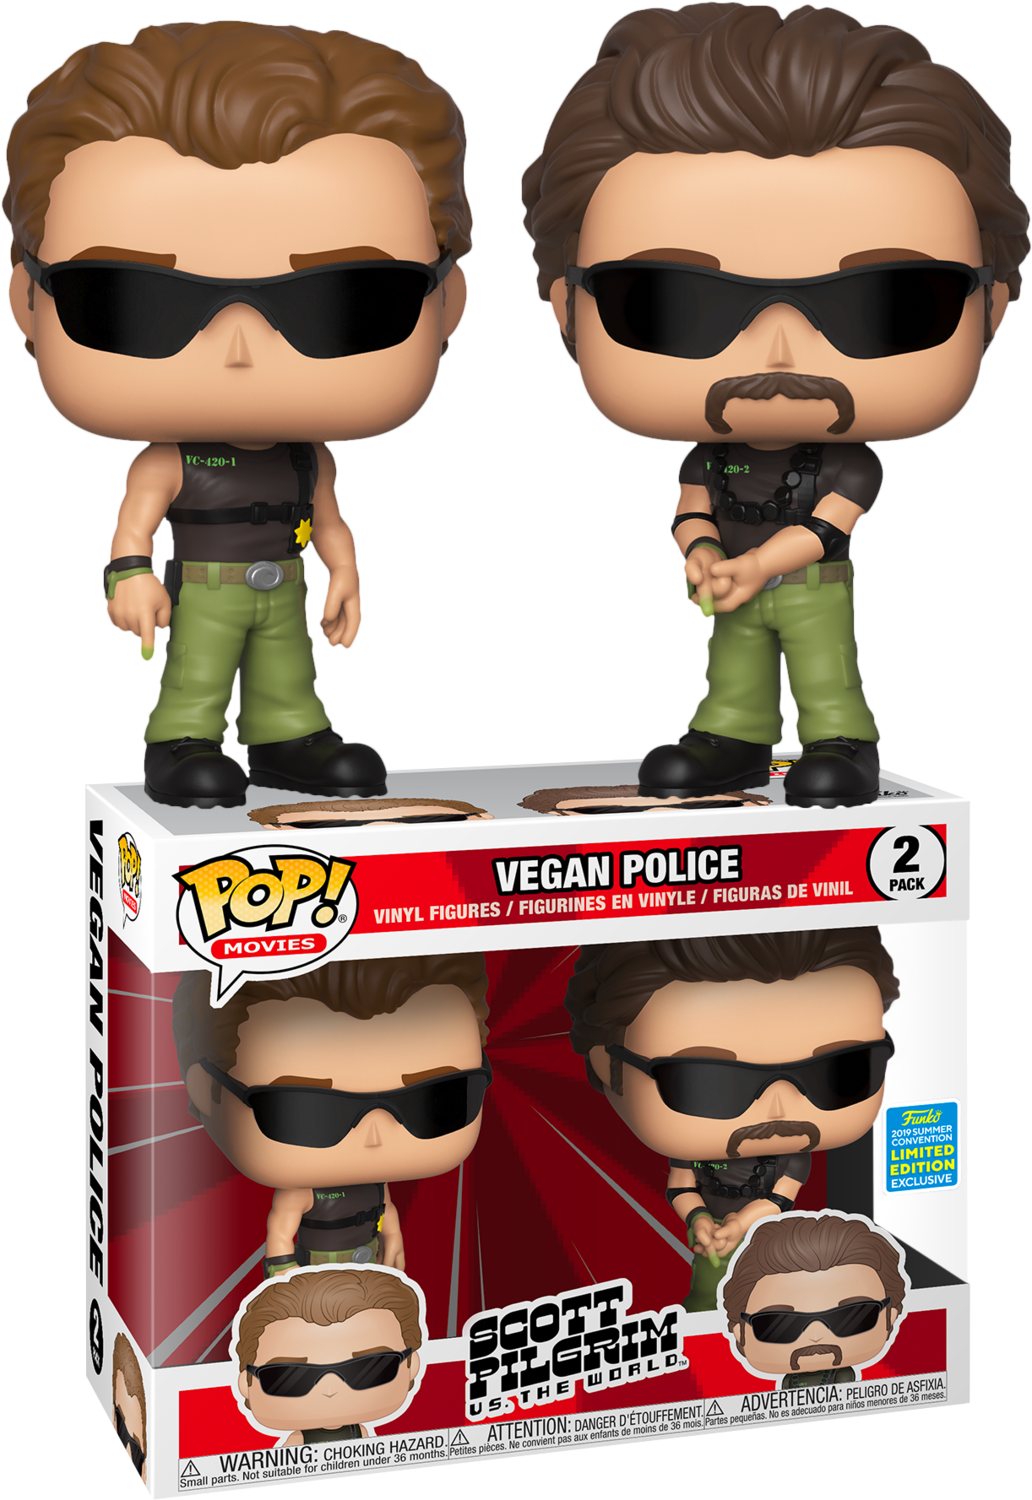 PRE-ORDER Scott Pilgrim vs. the World - Vegan Police Pop! Vinyl Figure 2-Pack (2019 Summer Convention Exclusive)